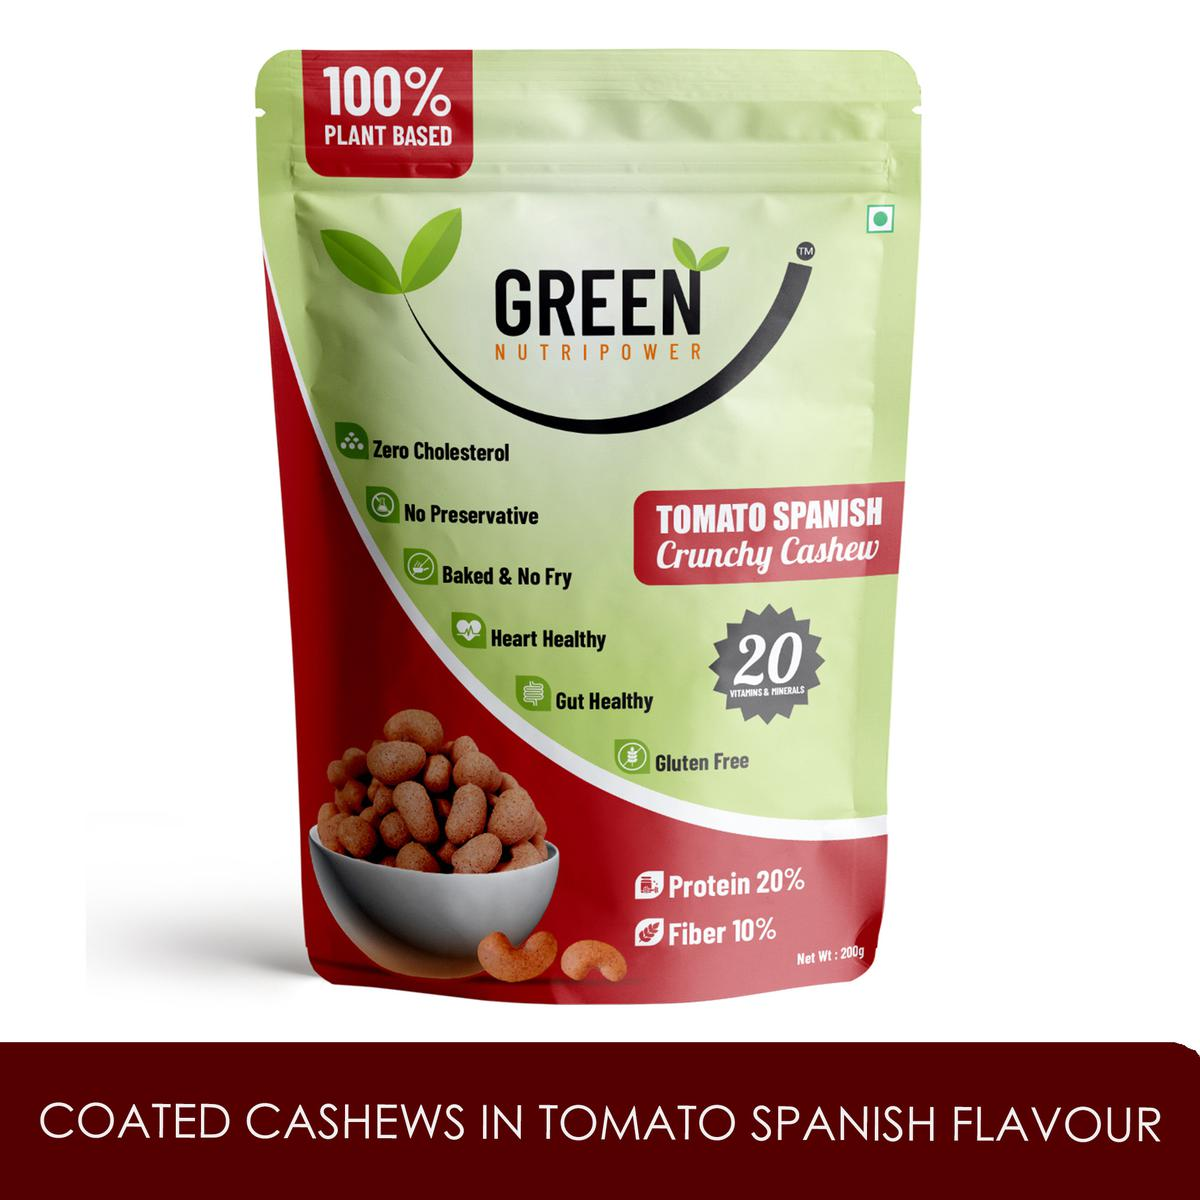 Green Nutripower - Coated Cashews in Tomato Spanish Flavour